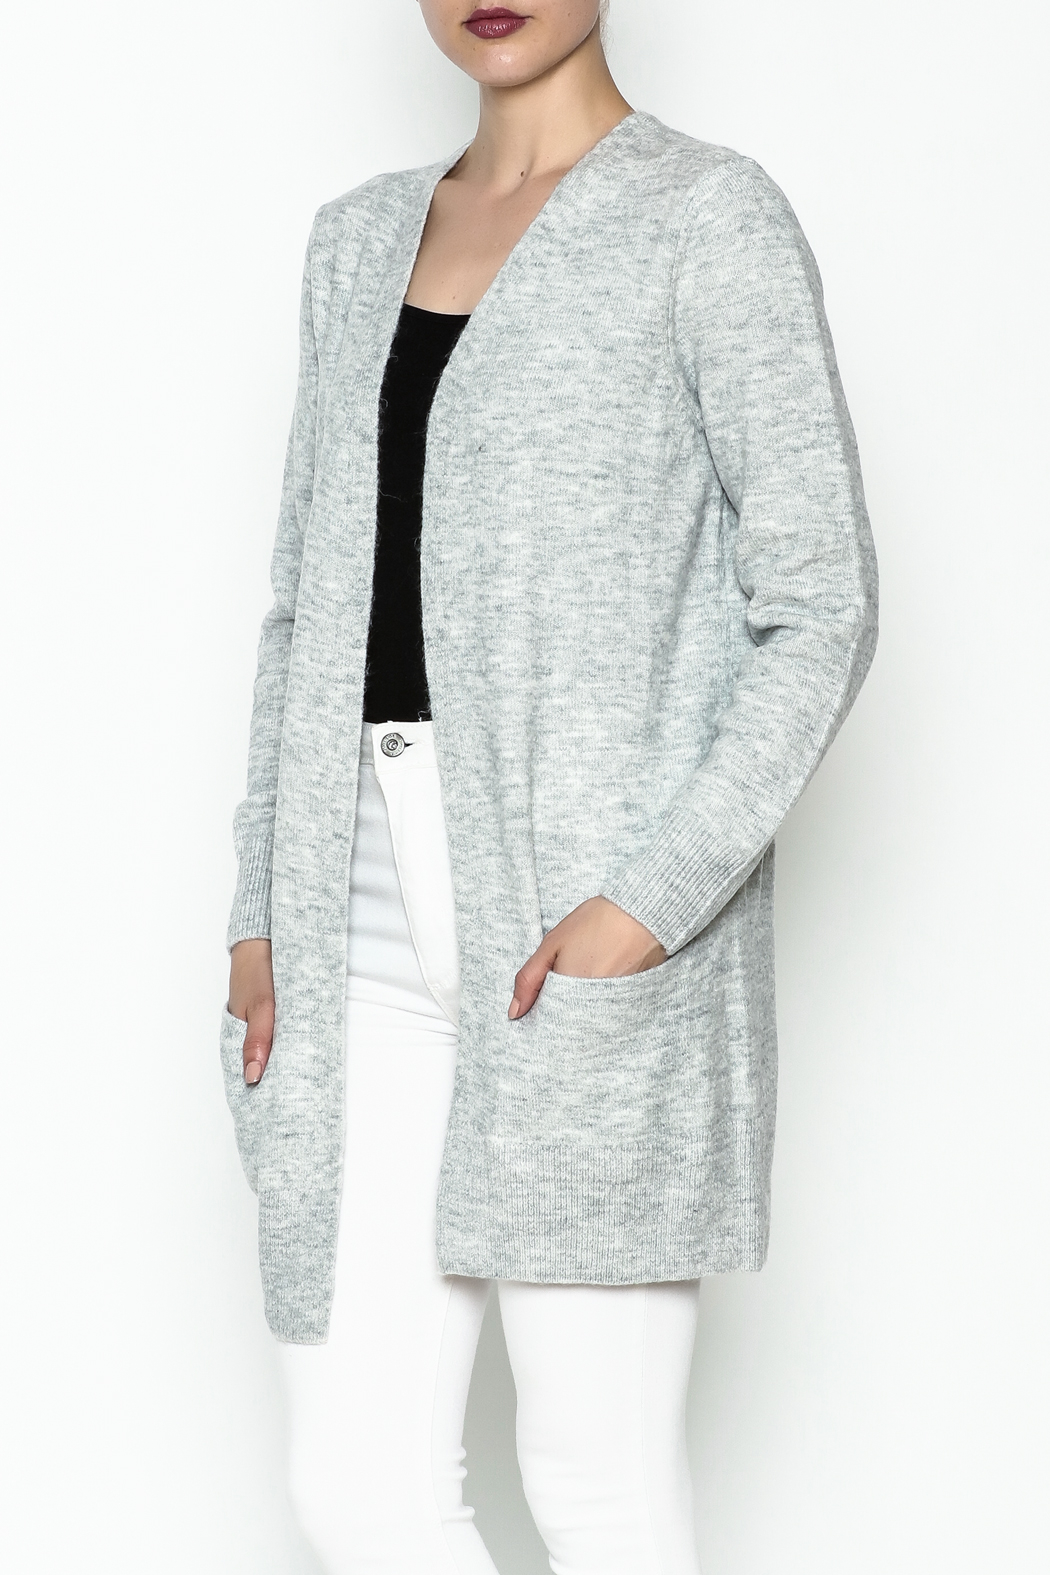 Black Tape/Dex Marled Cardigan - Front Cropped Image